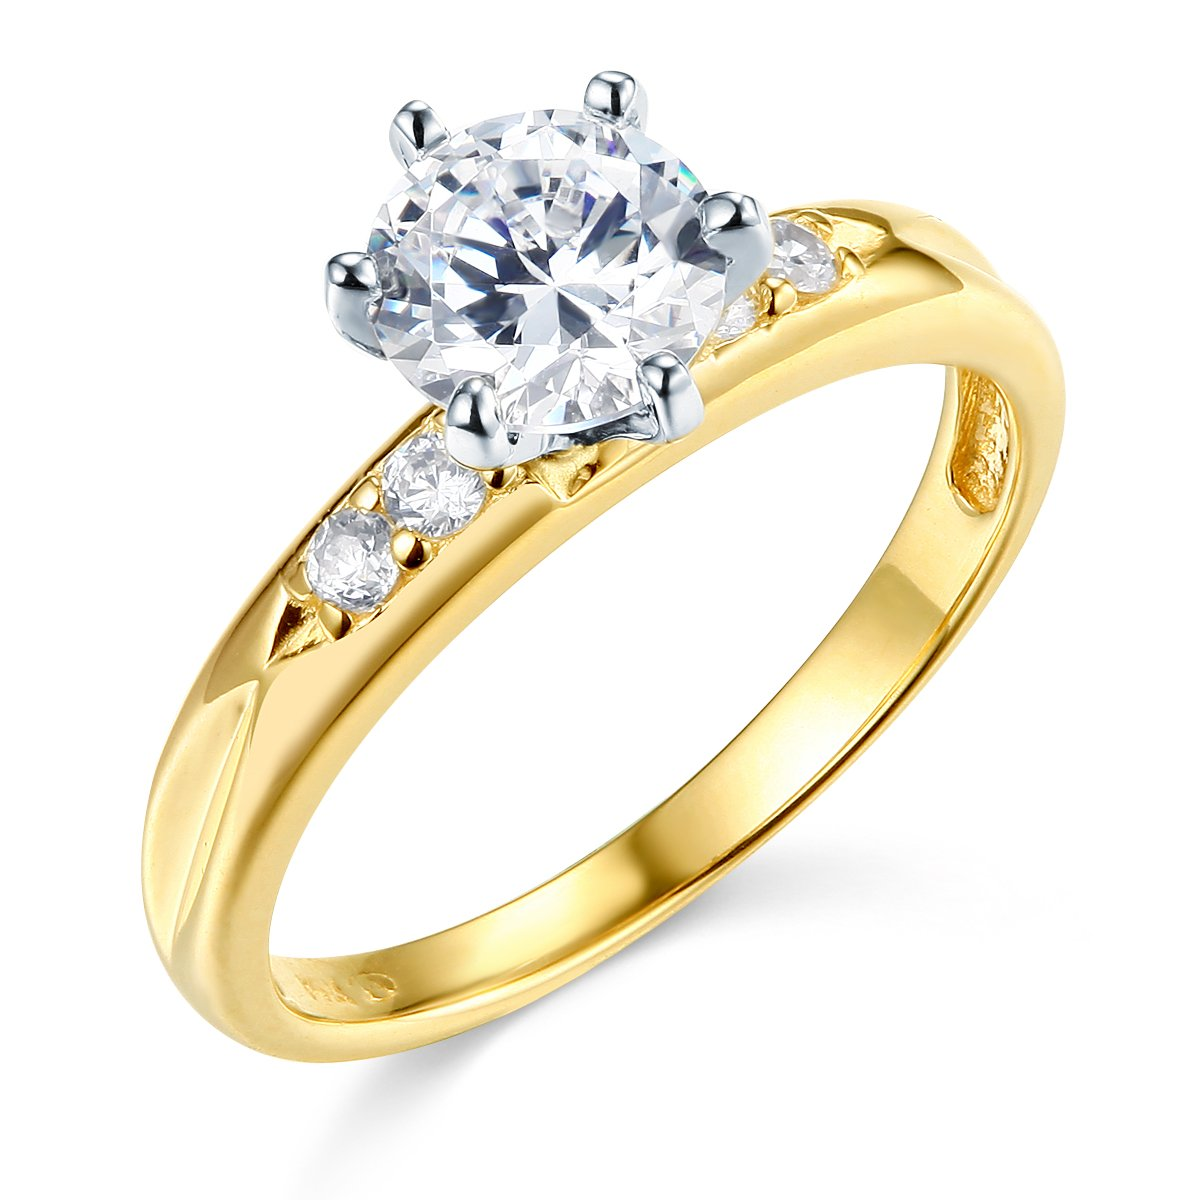 14K Yellow Gold Wedding Engagement Ring - Size 8